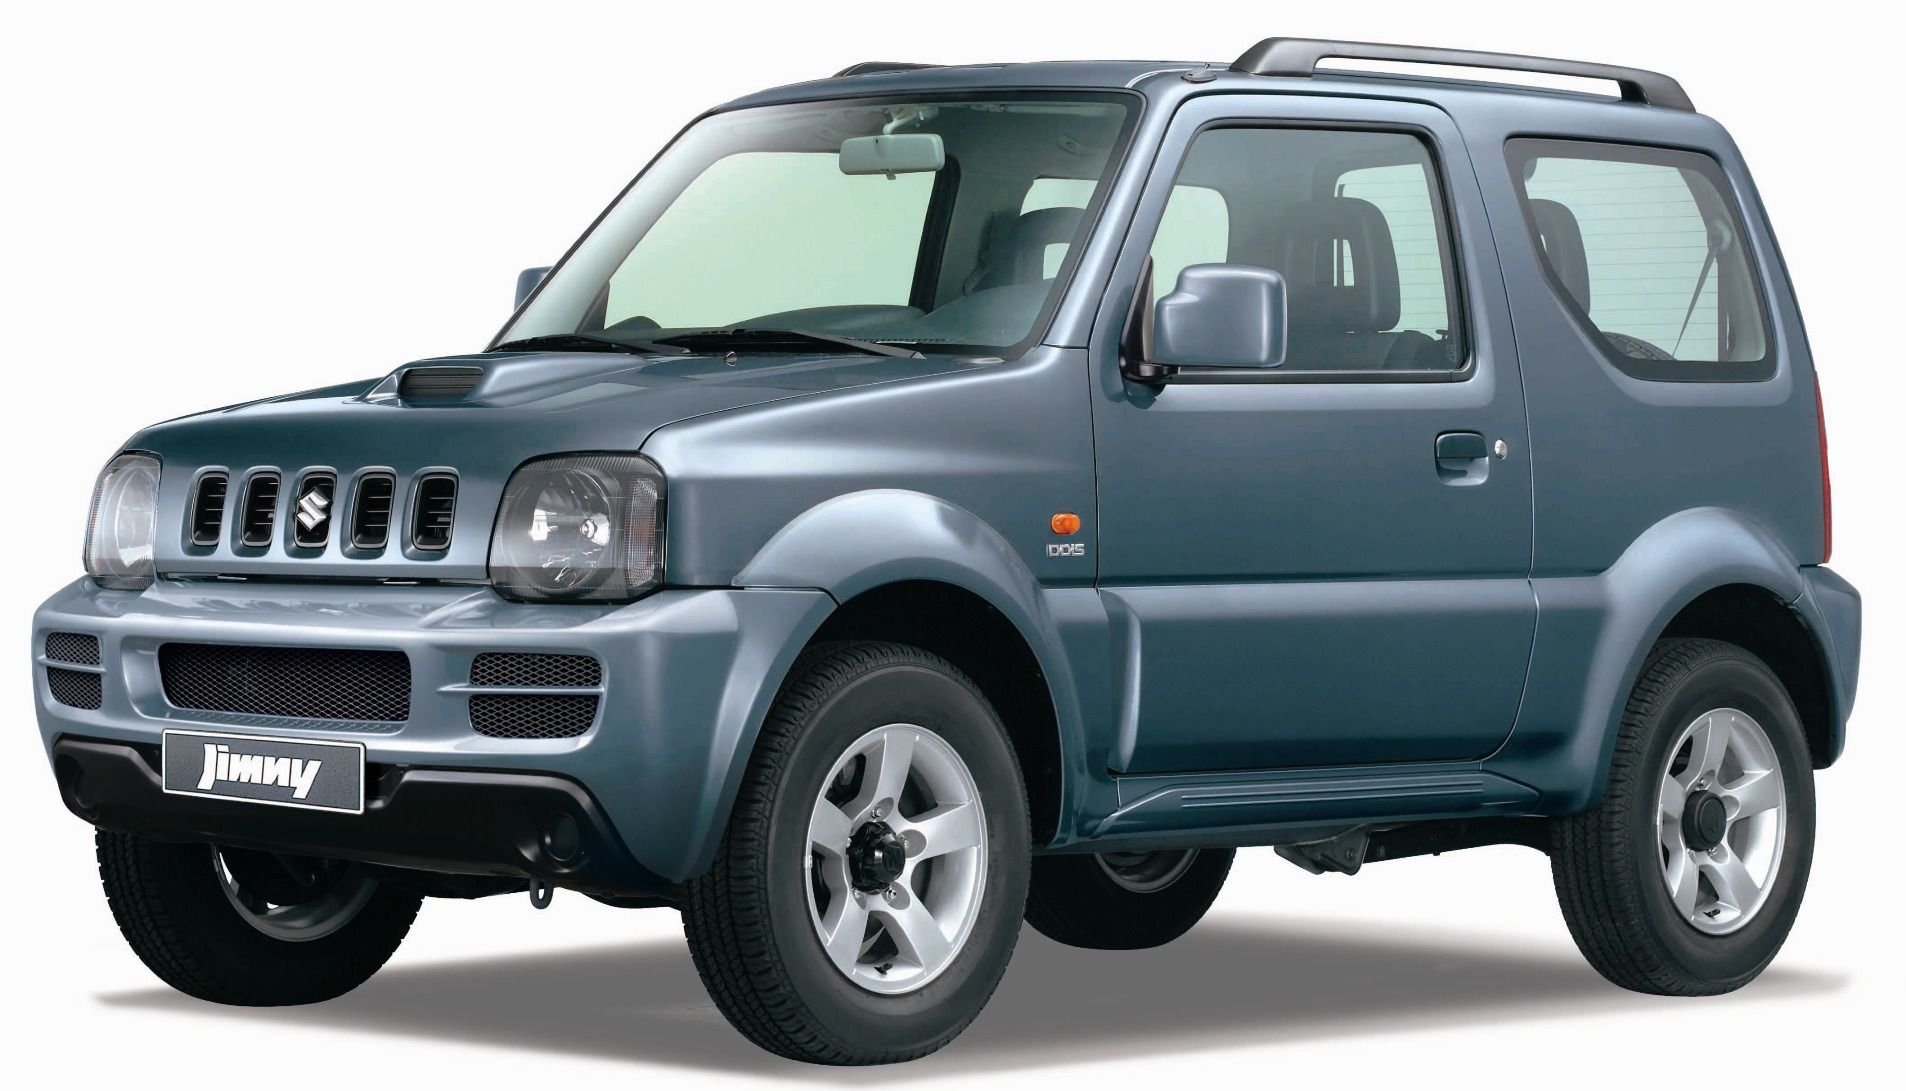 Maruti Jimny 2014 Specification Price Engine Suzuki Jimny